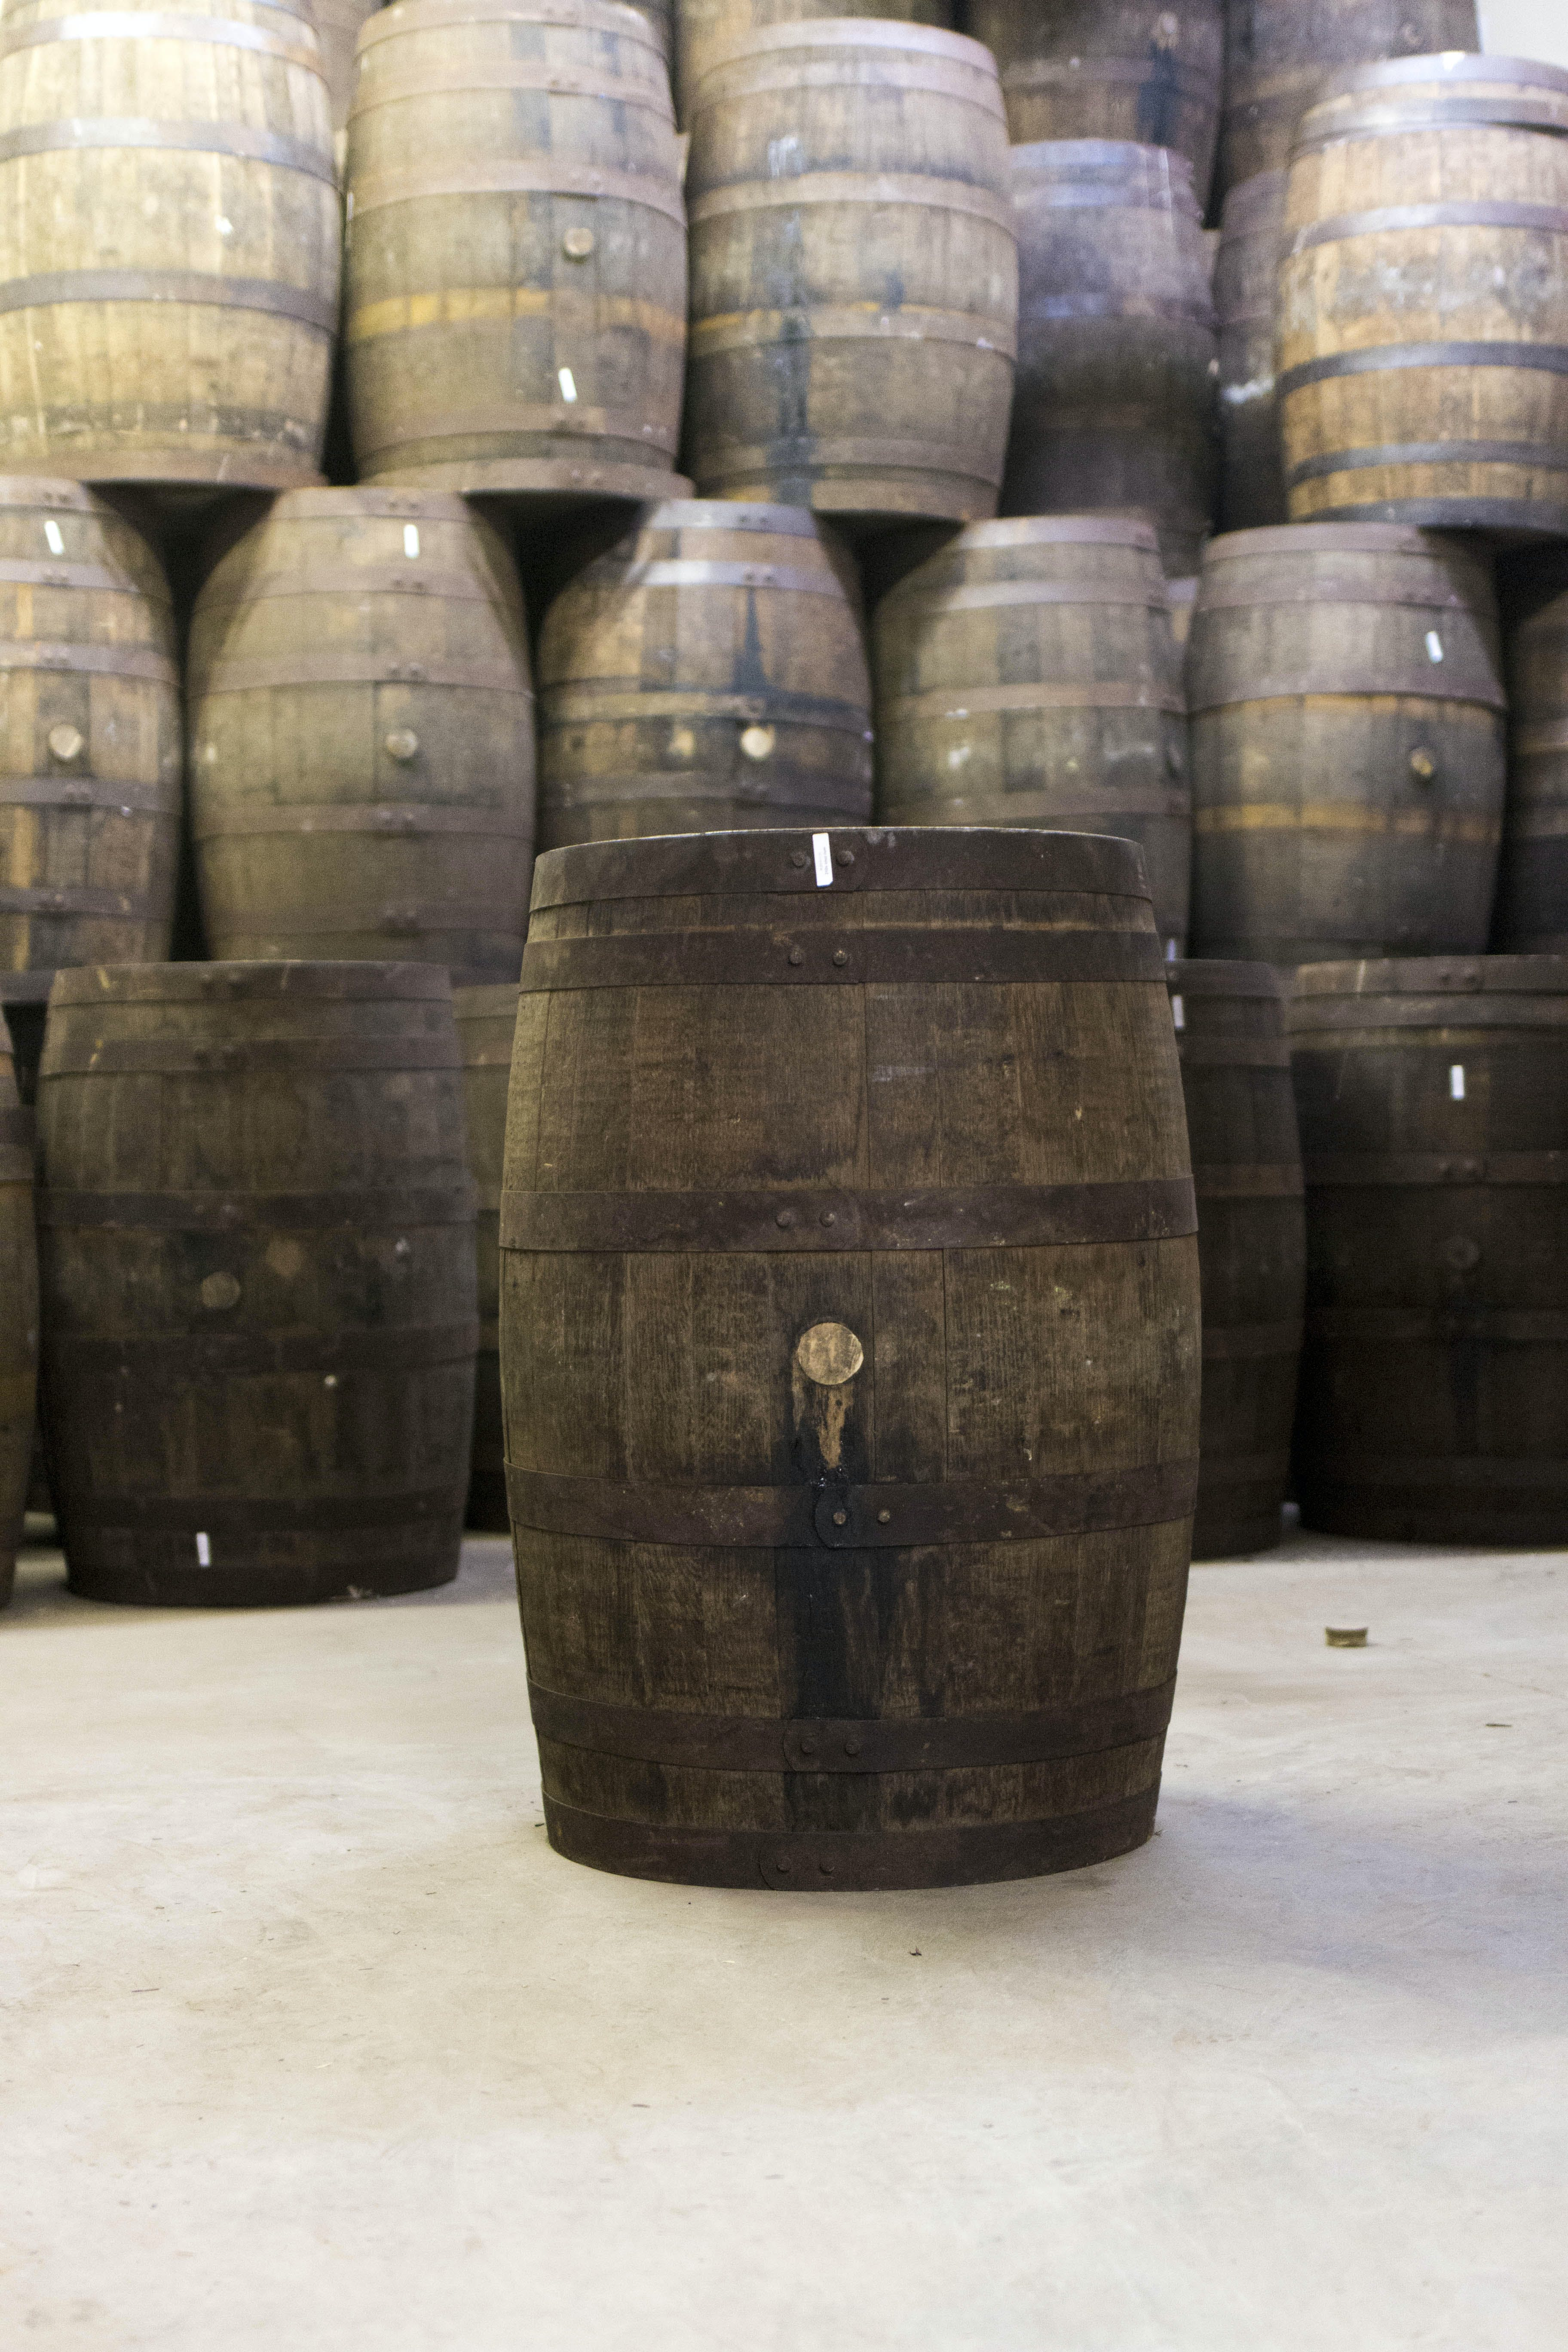 USED Rum (200L/53-gal) - USED Rum Barrels (Imported) - sold by Rocky Mountain Barrel Company